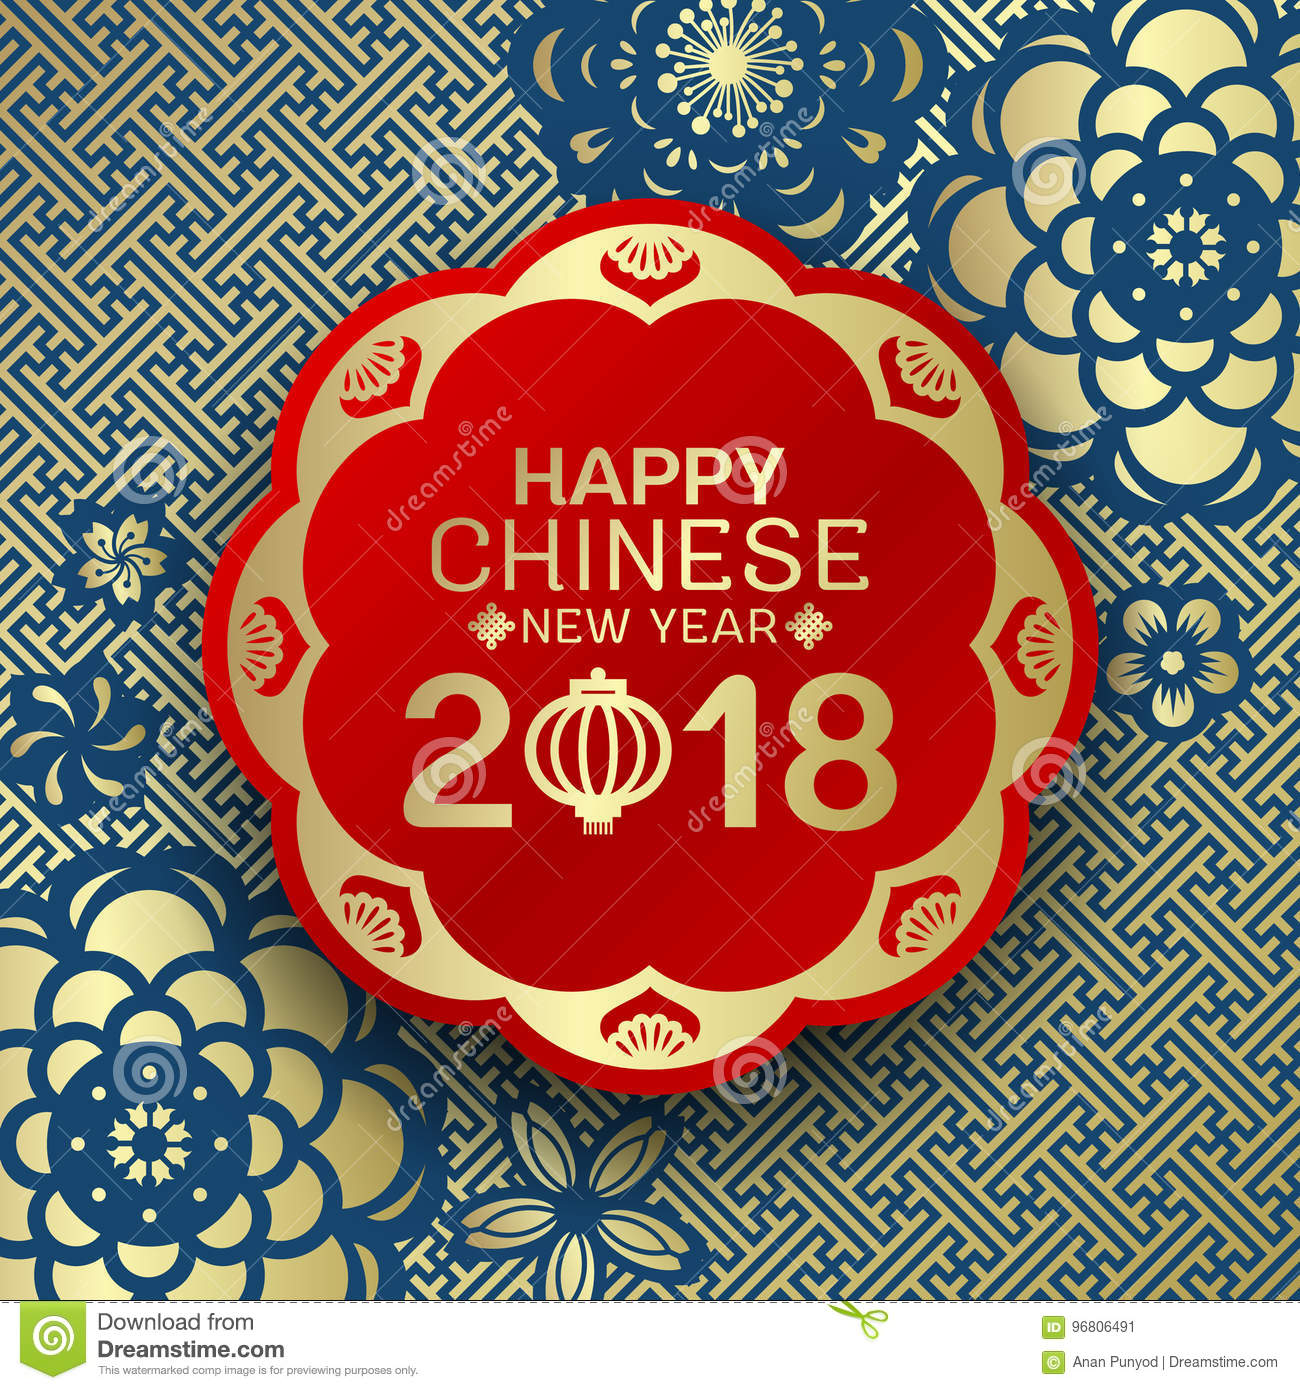 Happy Chinese new year 2018 text on red circle banner and blue gold flower china pattern abstract background vector design